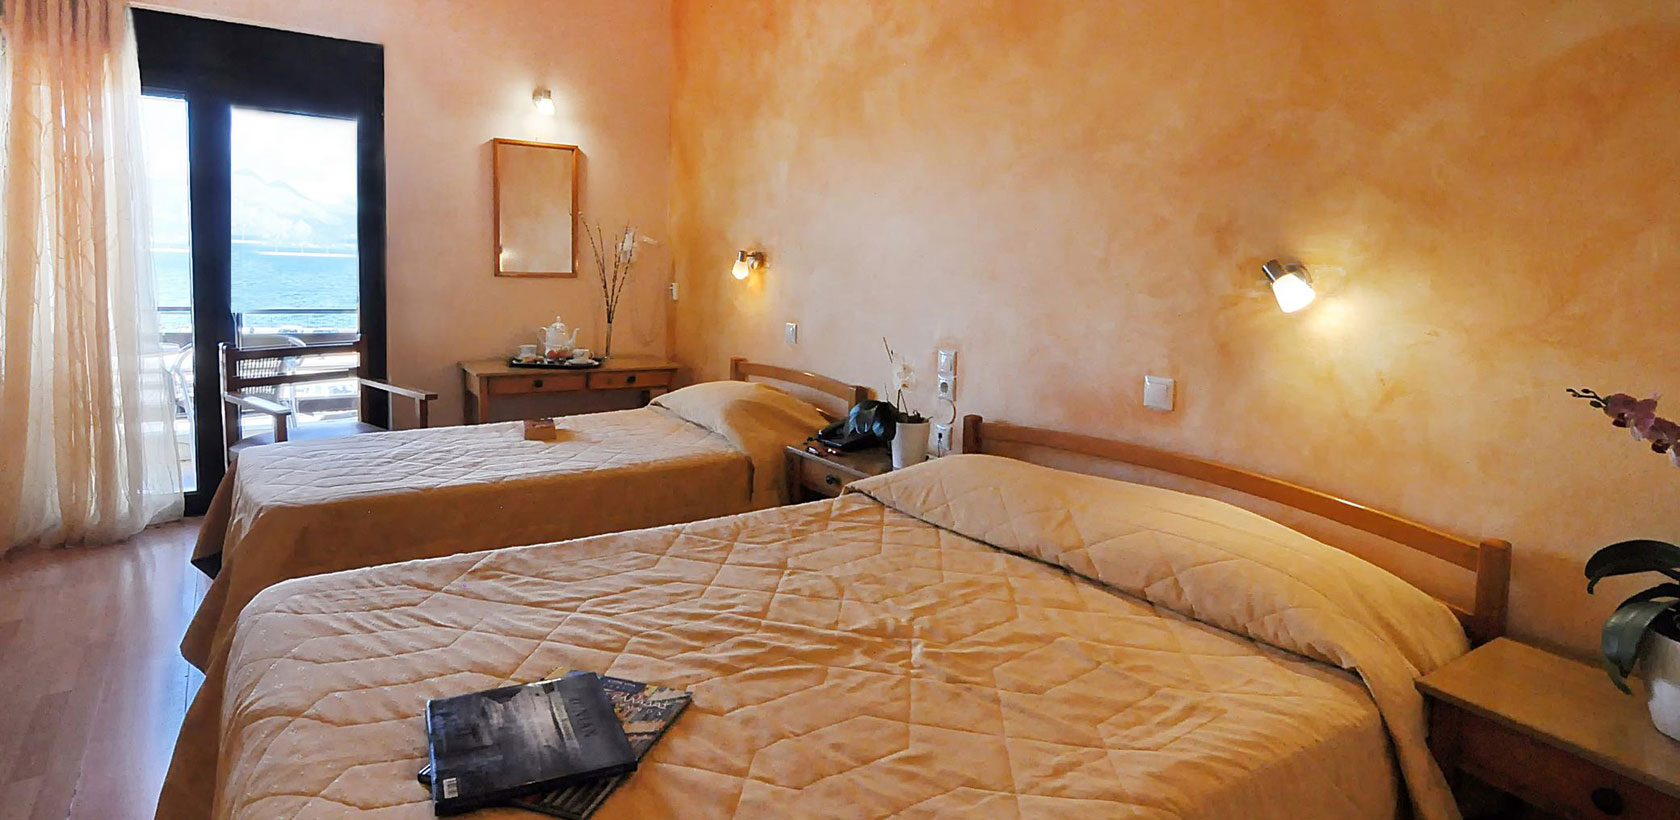 Corfu Accommodation - Triple Room